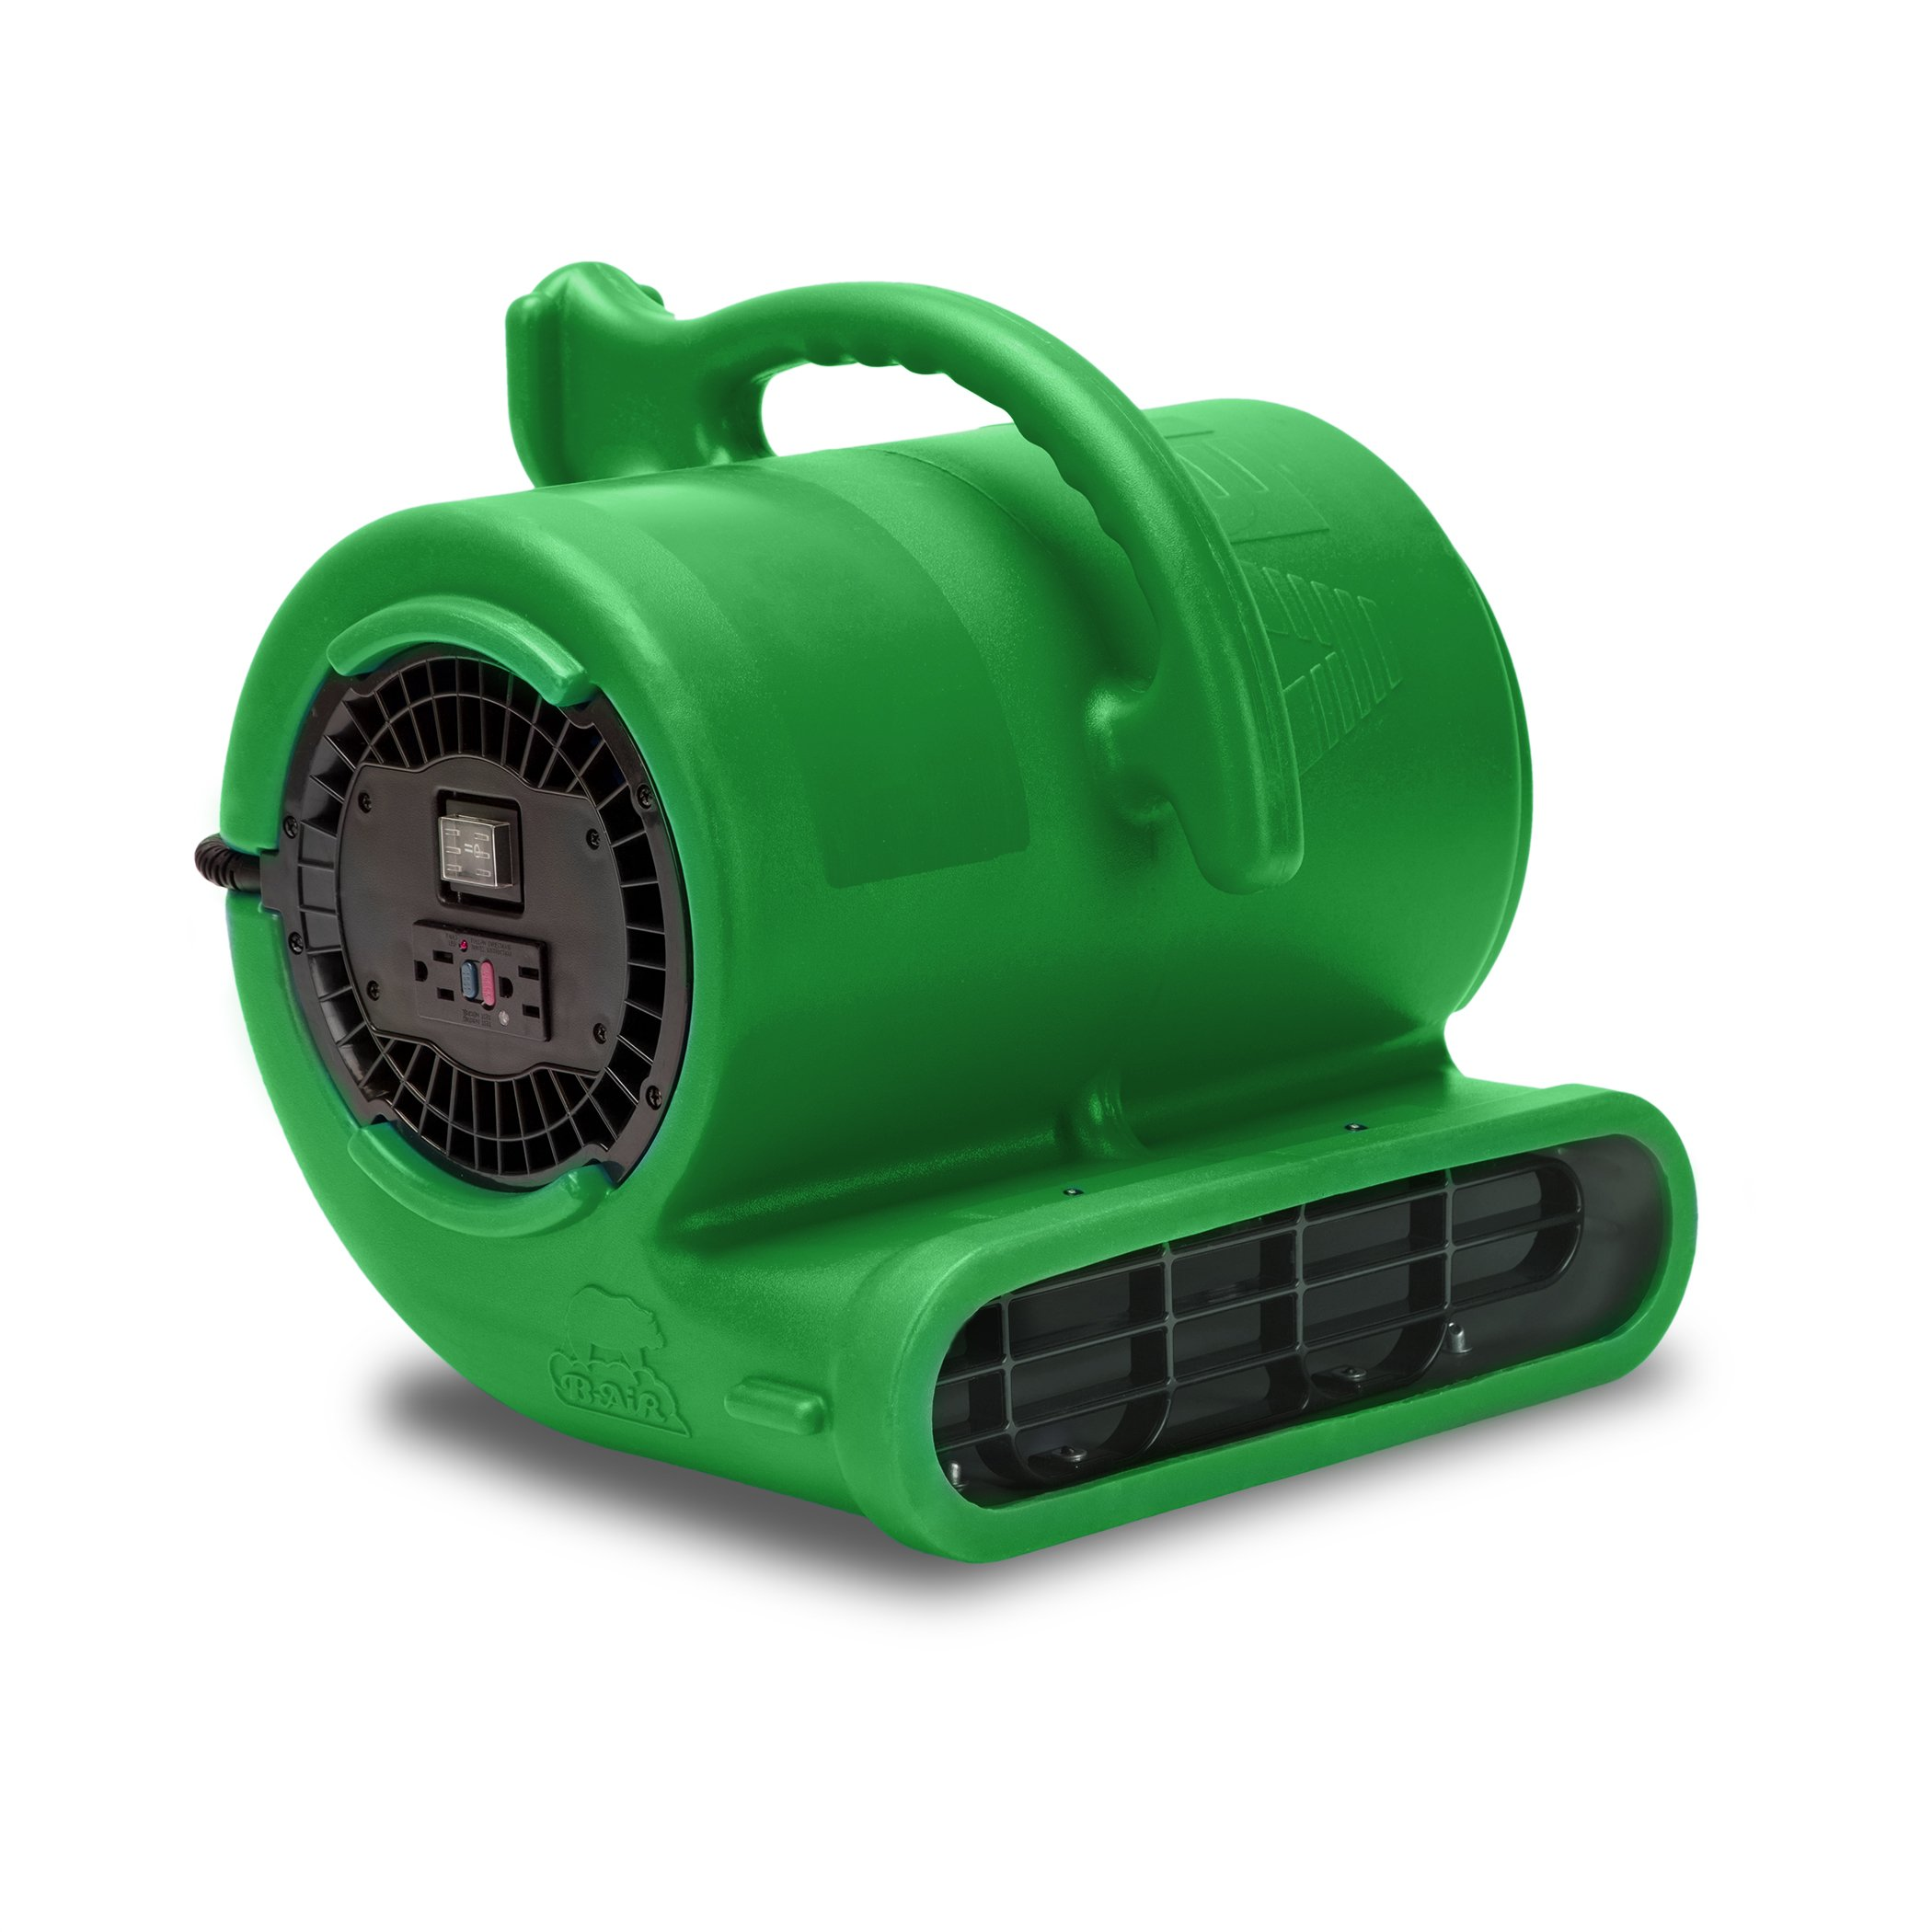 B-Air VP-33 1/3 HP 2530 CFM Air Mover for Water Damage Restoration Carpet Dryer Janitorial Floor Blower Fan, Green by B-Air